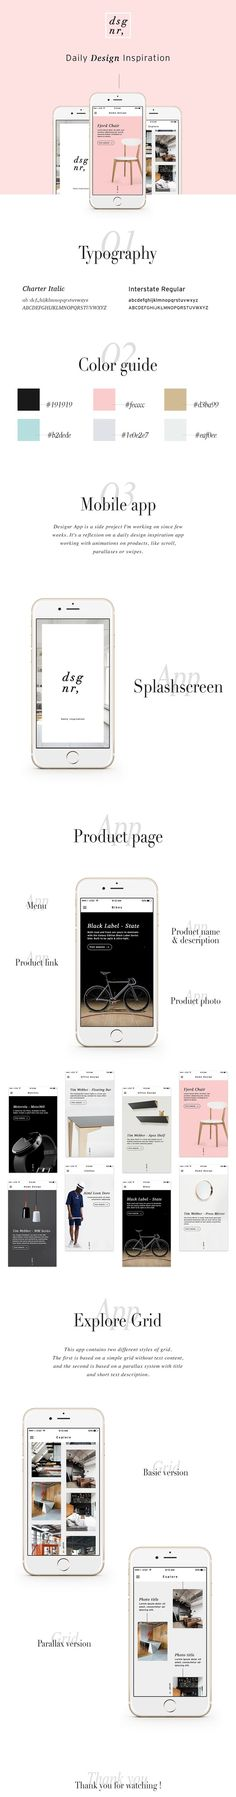 Daily design inspiration app working with animations on products, like scroll, parallaxes or swipes.